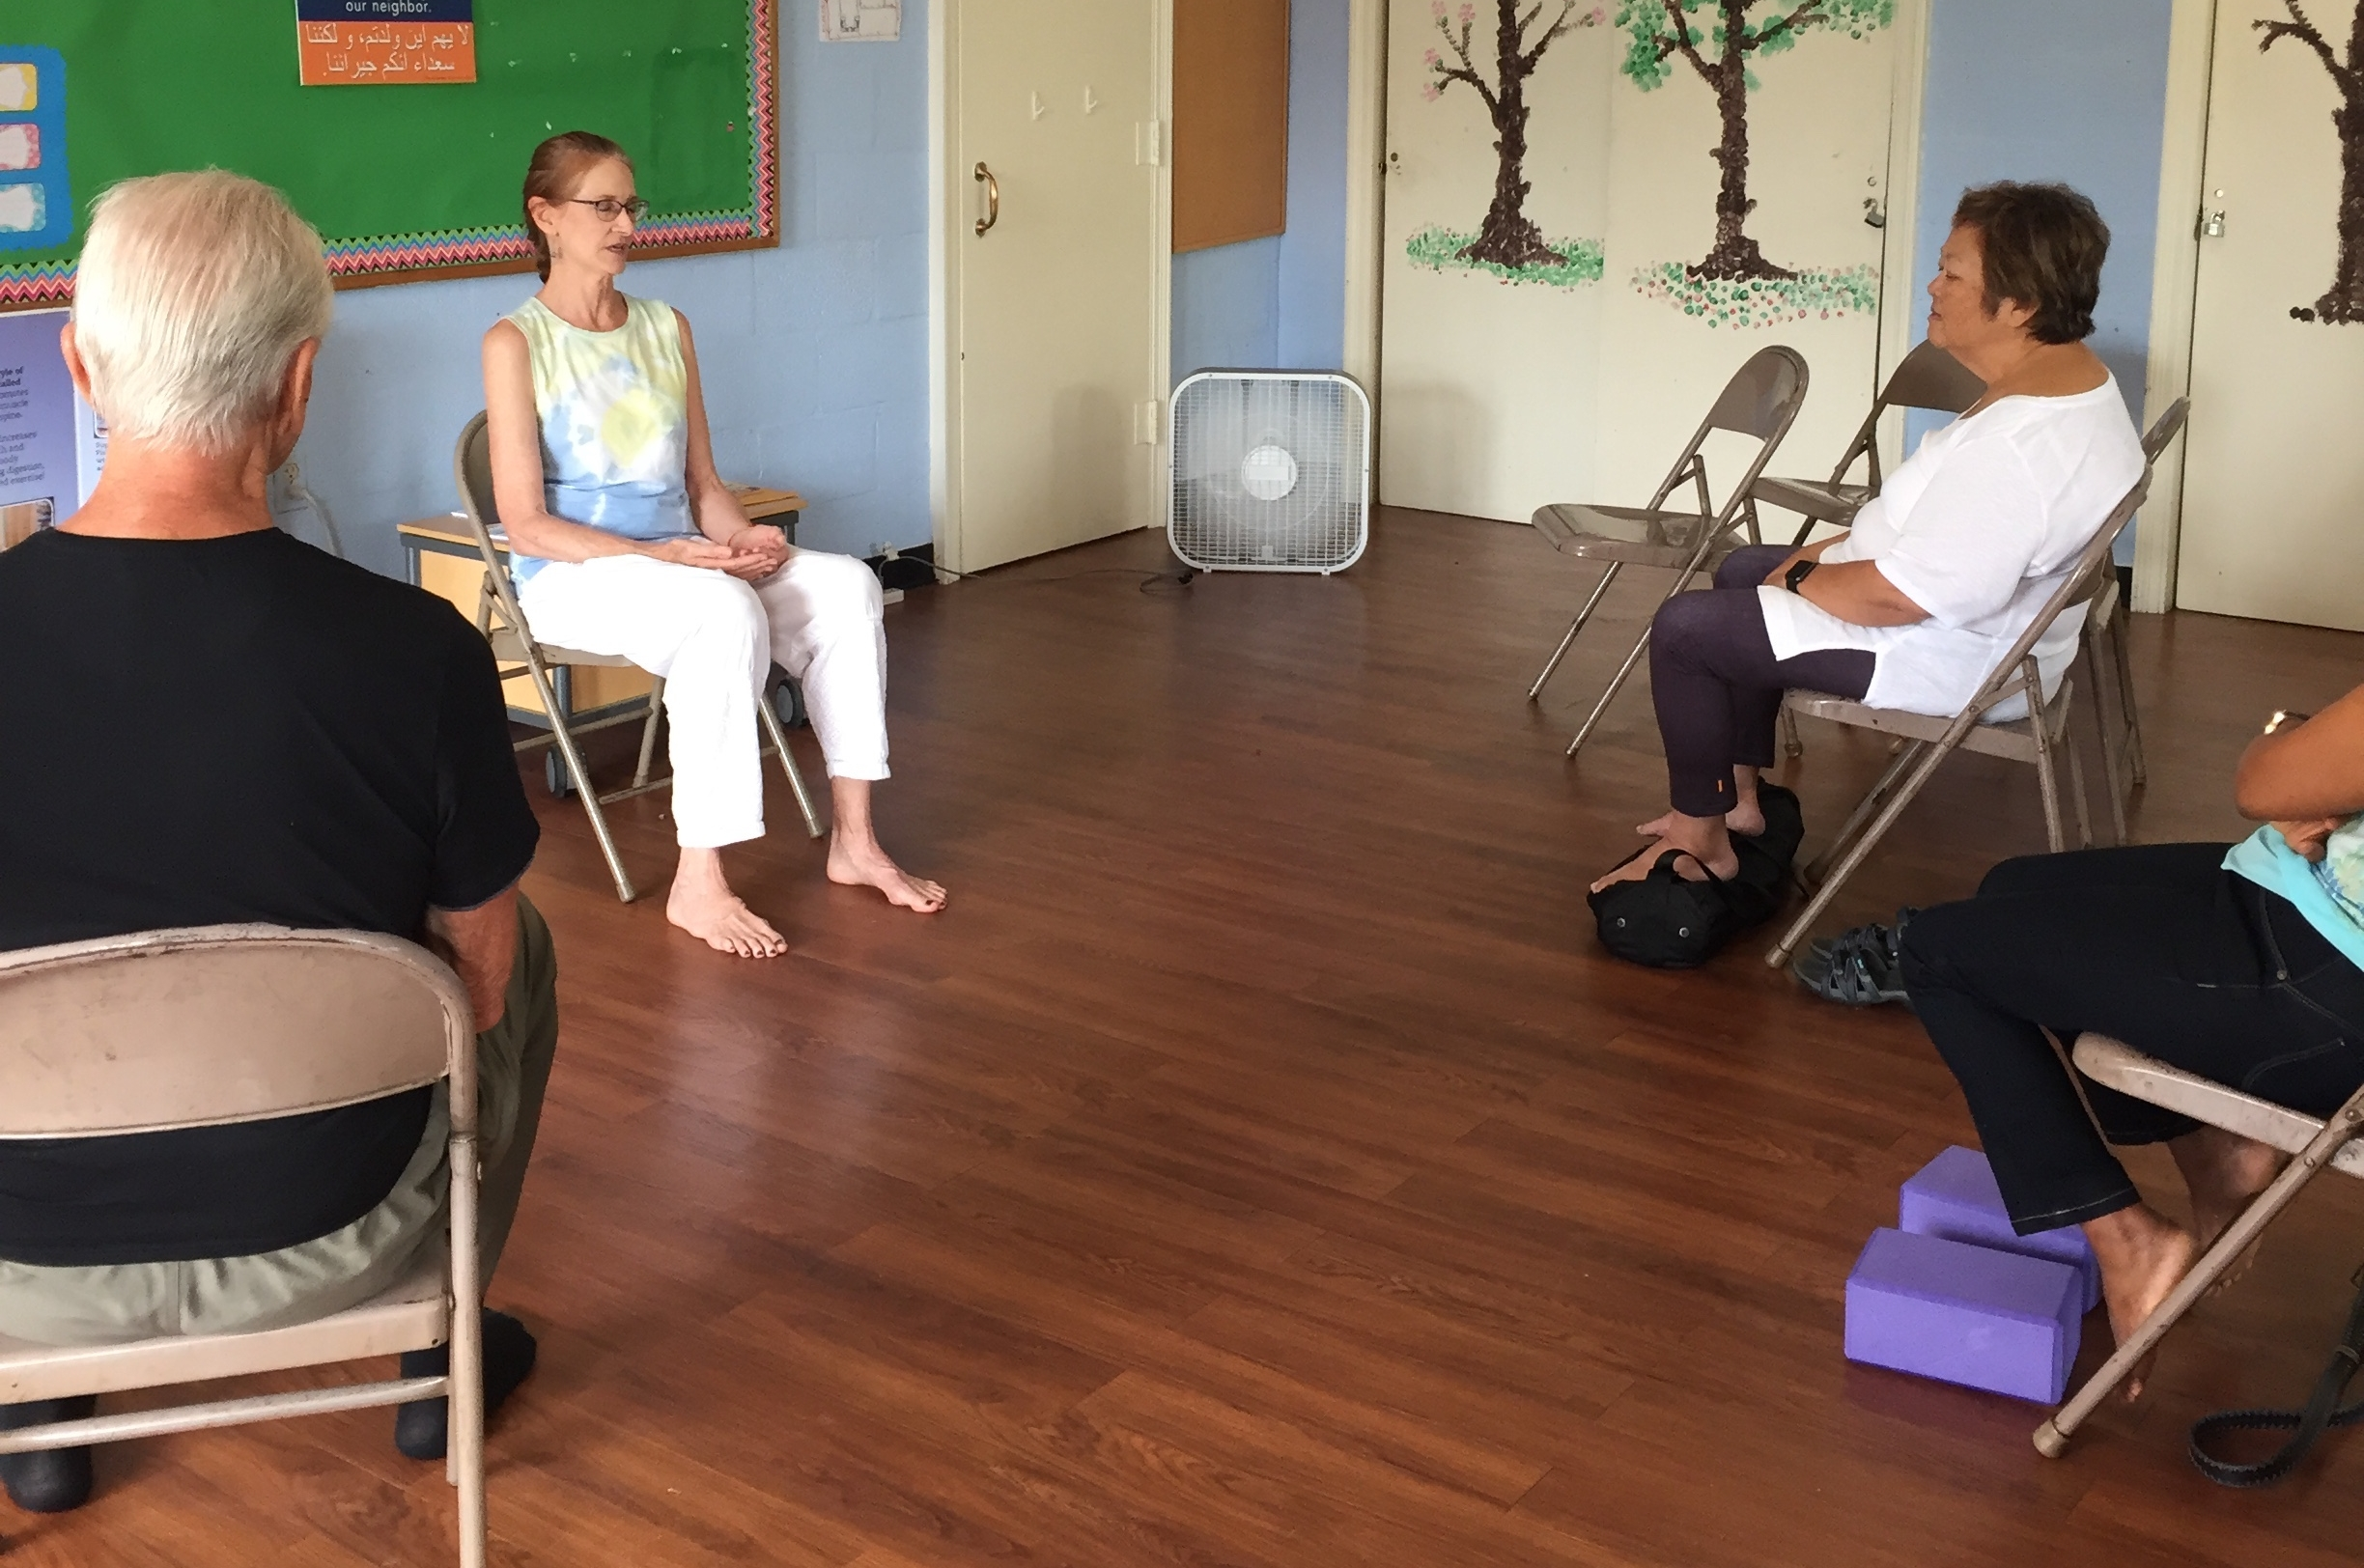 Michèle guiding participants at ASAP Washington, DC, a nonprofit organization; volunteer support. Learn more about ASAP at   www.asylumprojectdc.org  . Photo used courtesy of MiRé Yoga.